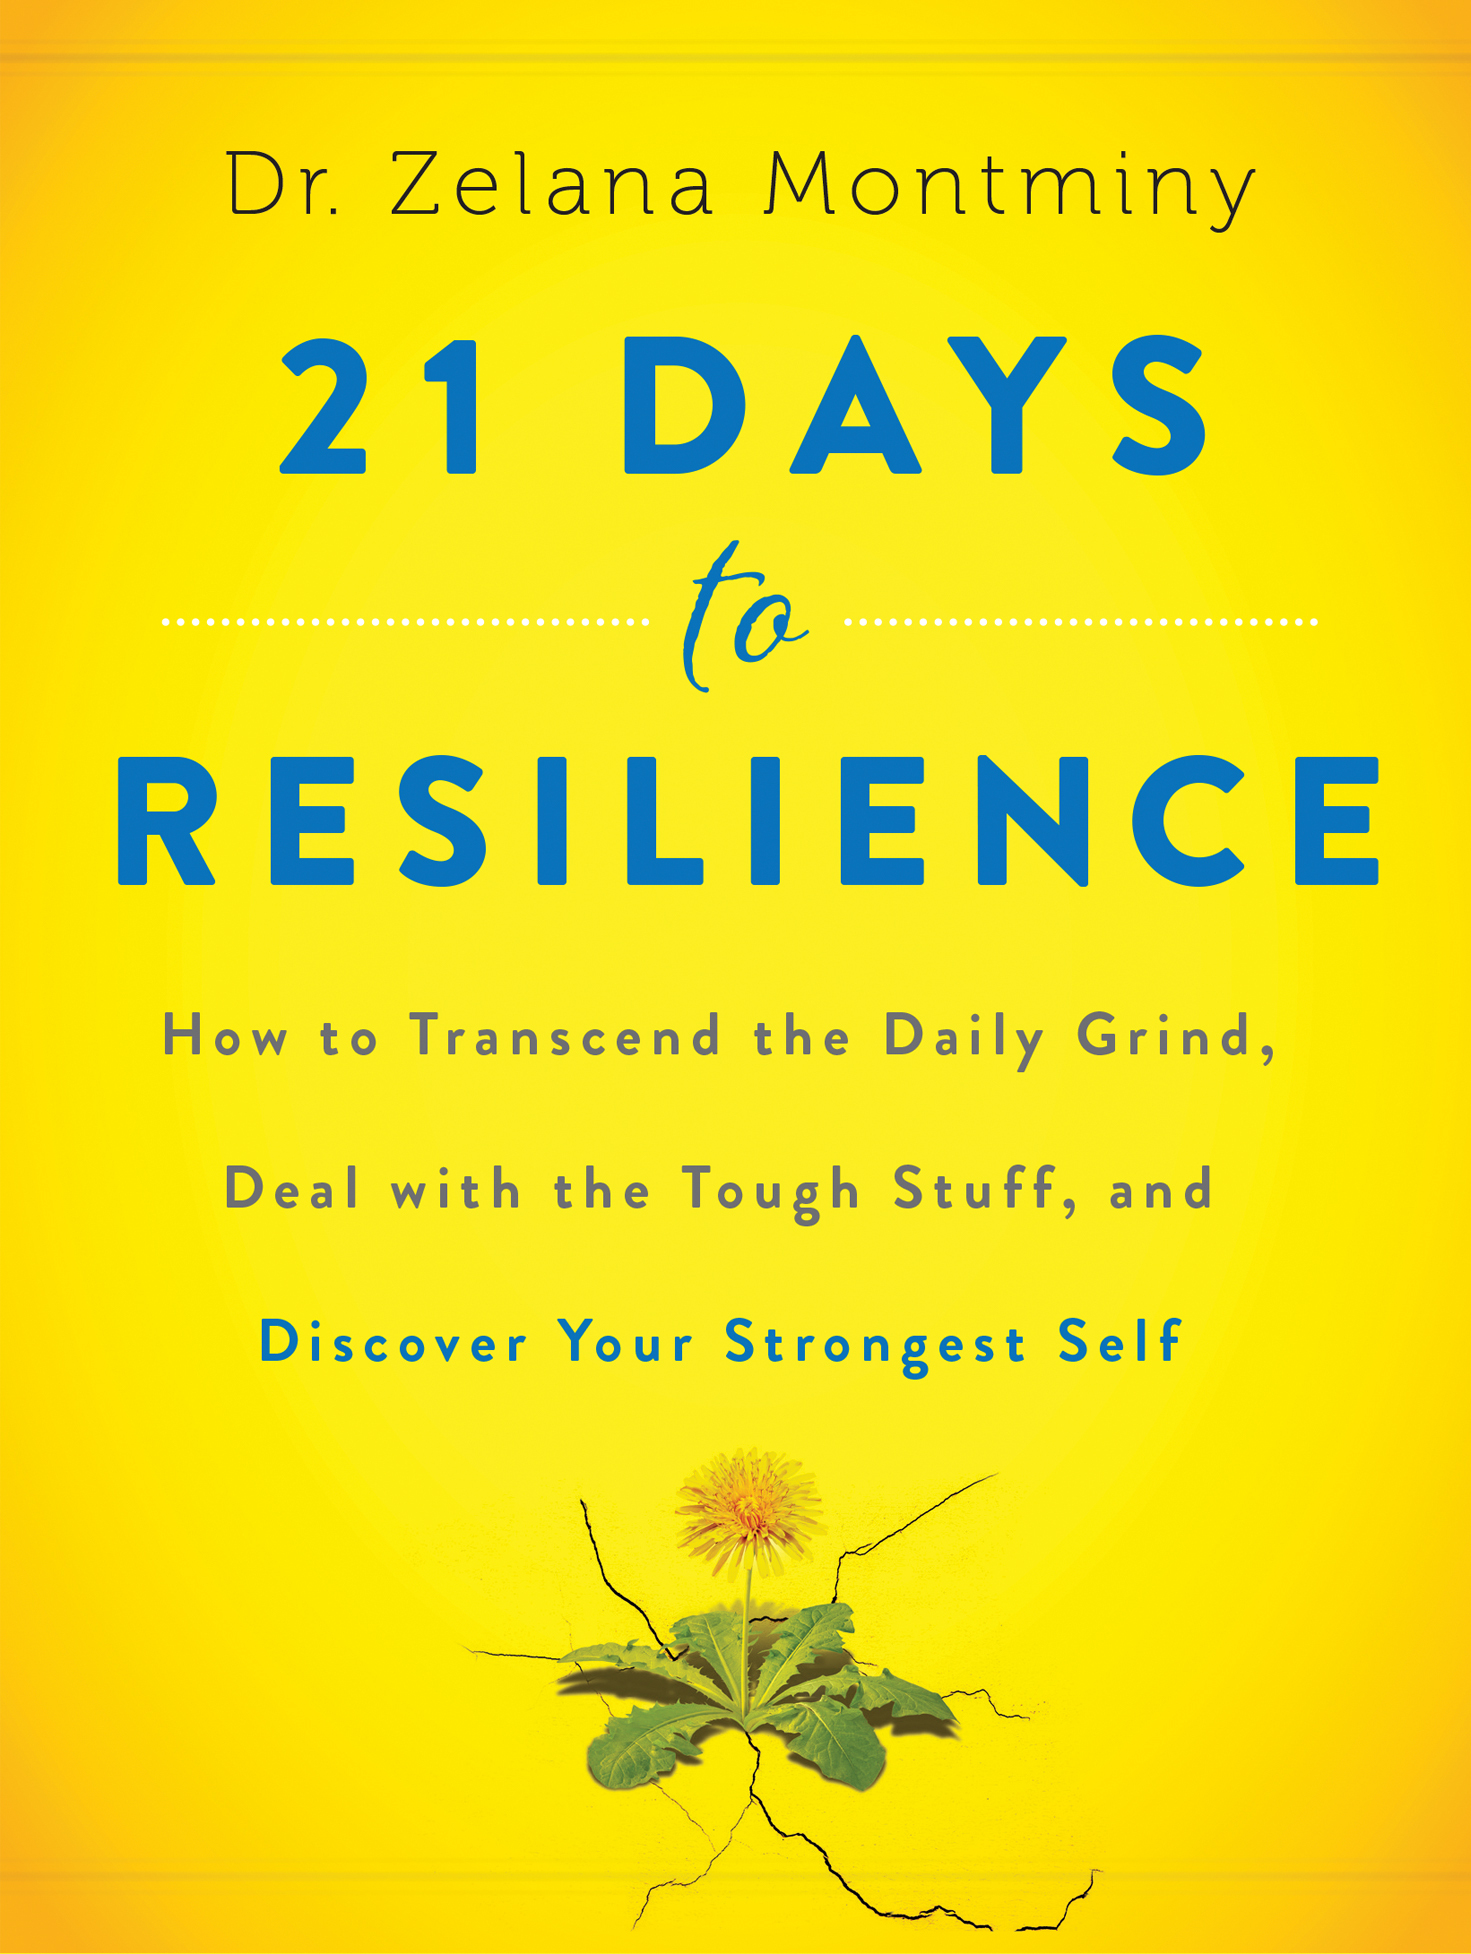 21-days-to-resilience-how-to-transcend-the-daily-grind-deal-with-the-tough-stuff-and-discover-your-strongest-self